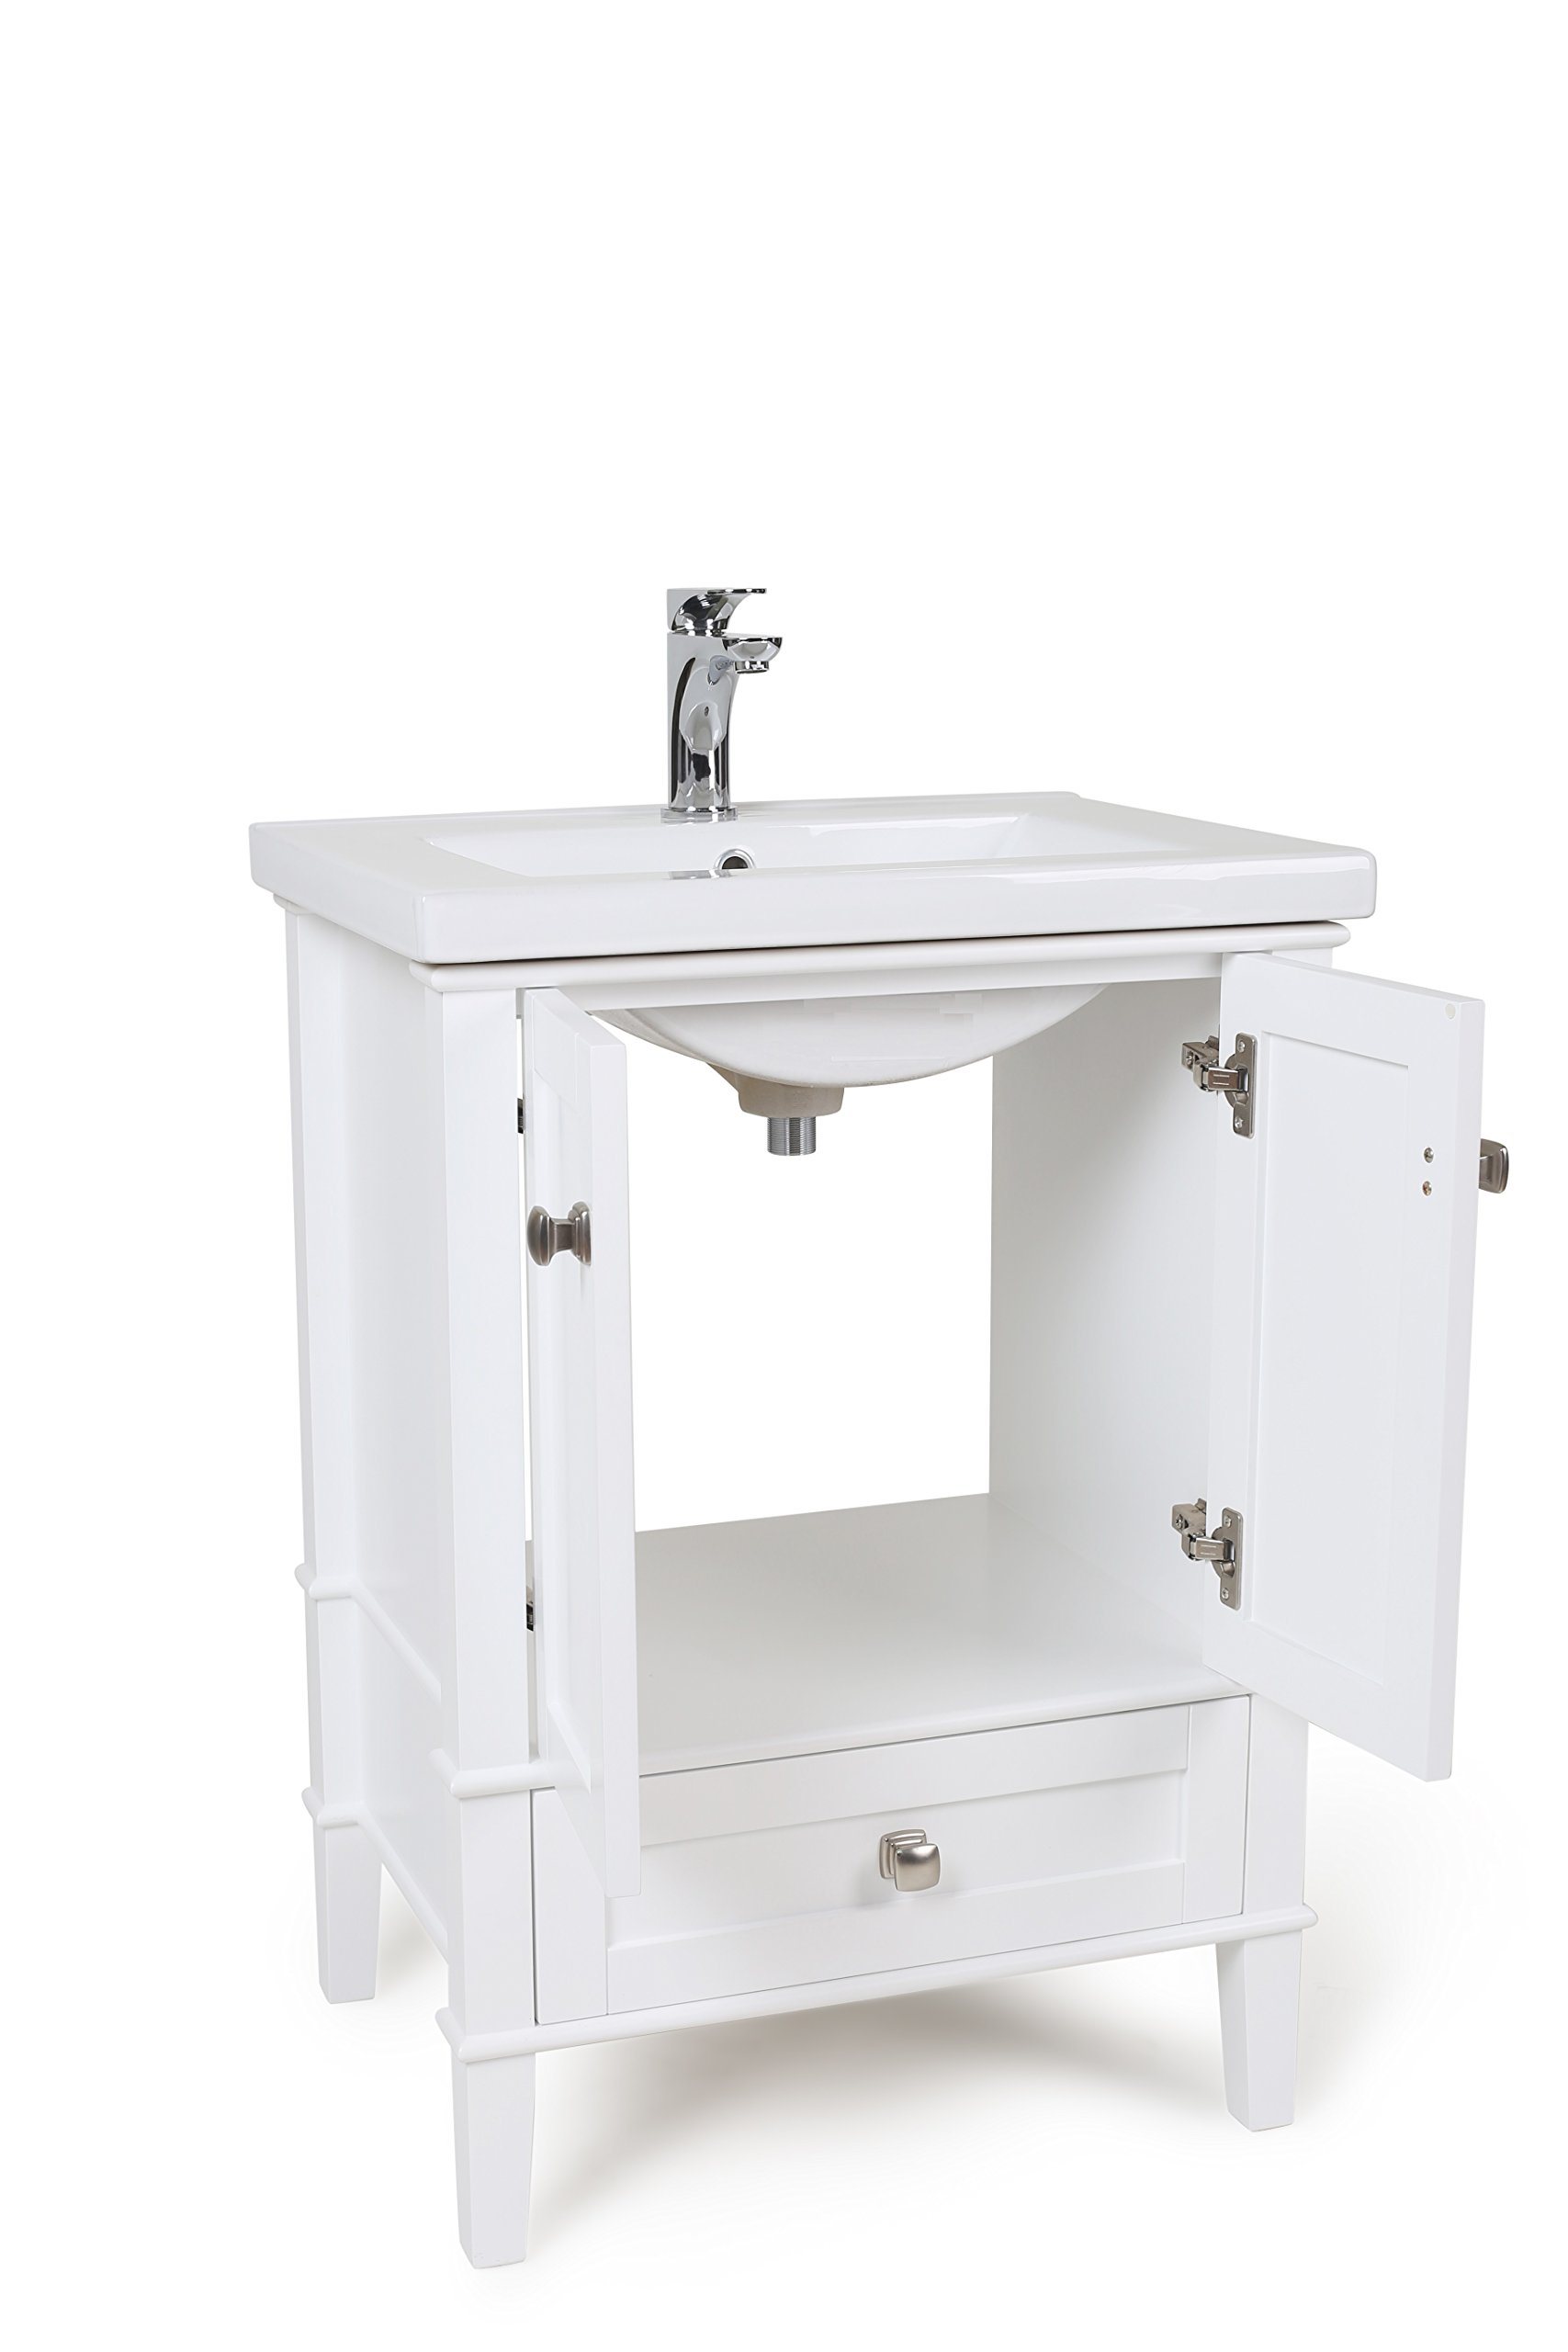 "Elegant Decor VF-2001 Single Bathroom Vanity Set, 24"", White/VF-2001 - Key design with top Quality mirror panels and tapered legs The 2 large drawers provide plenty of storage space for Toiletry and towels Authentic Italian Carrera white marble countertop - bathroom-vanities, bathroom-fixtures-hardware, bathroom - 71XSzmrFRGL -"